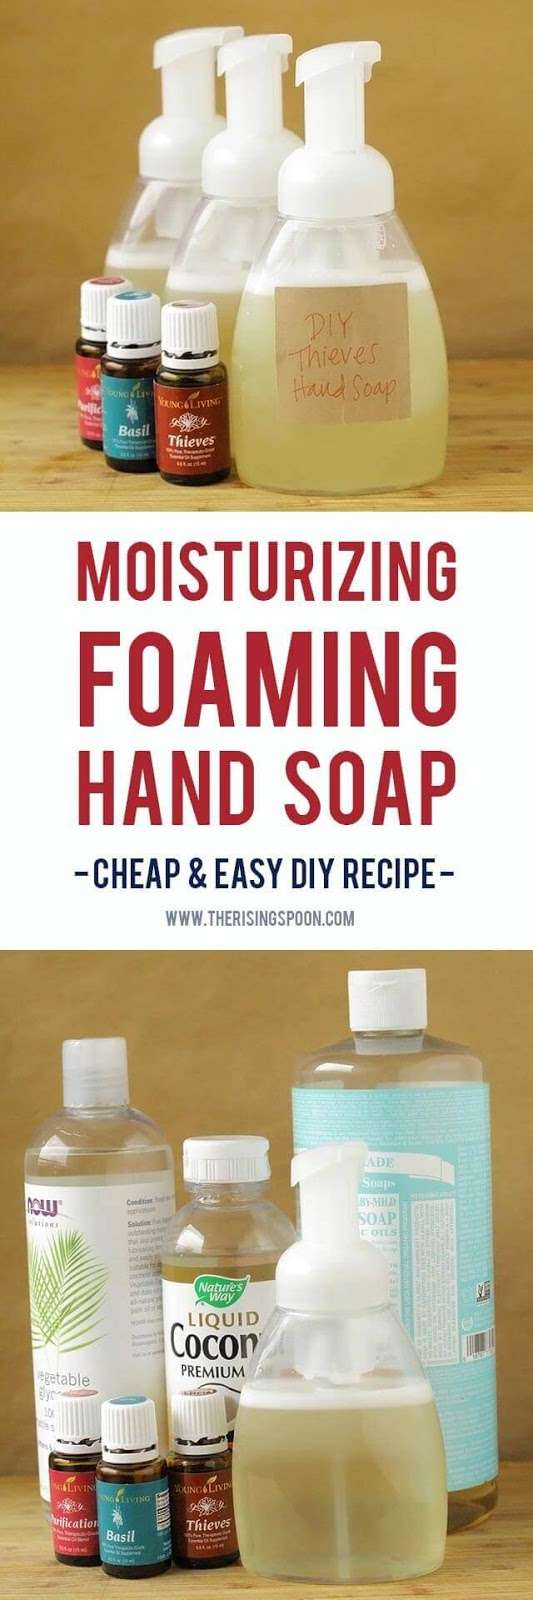 Want to make your own foaming hand soap at home? It's not hard! Try my super easy recipe using a few simple and non-toxic ingredients like liquid castile soap, water, moisturizing liquid carrier oils, and essential oils. This homemade version costs pennies to make a single batch and your hands will thank you!